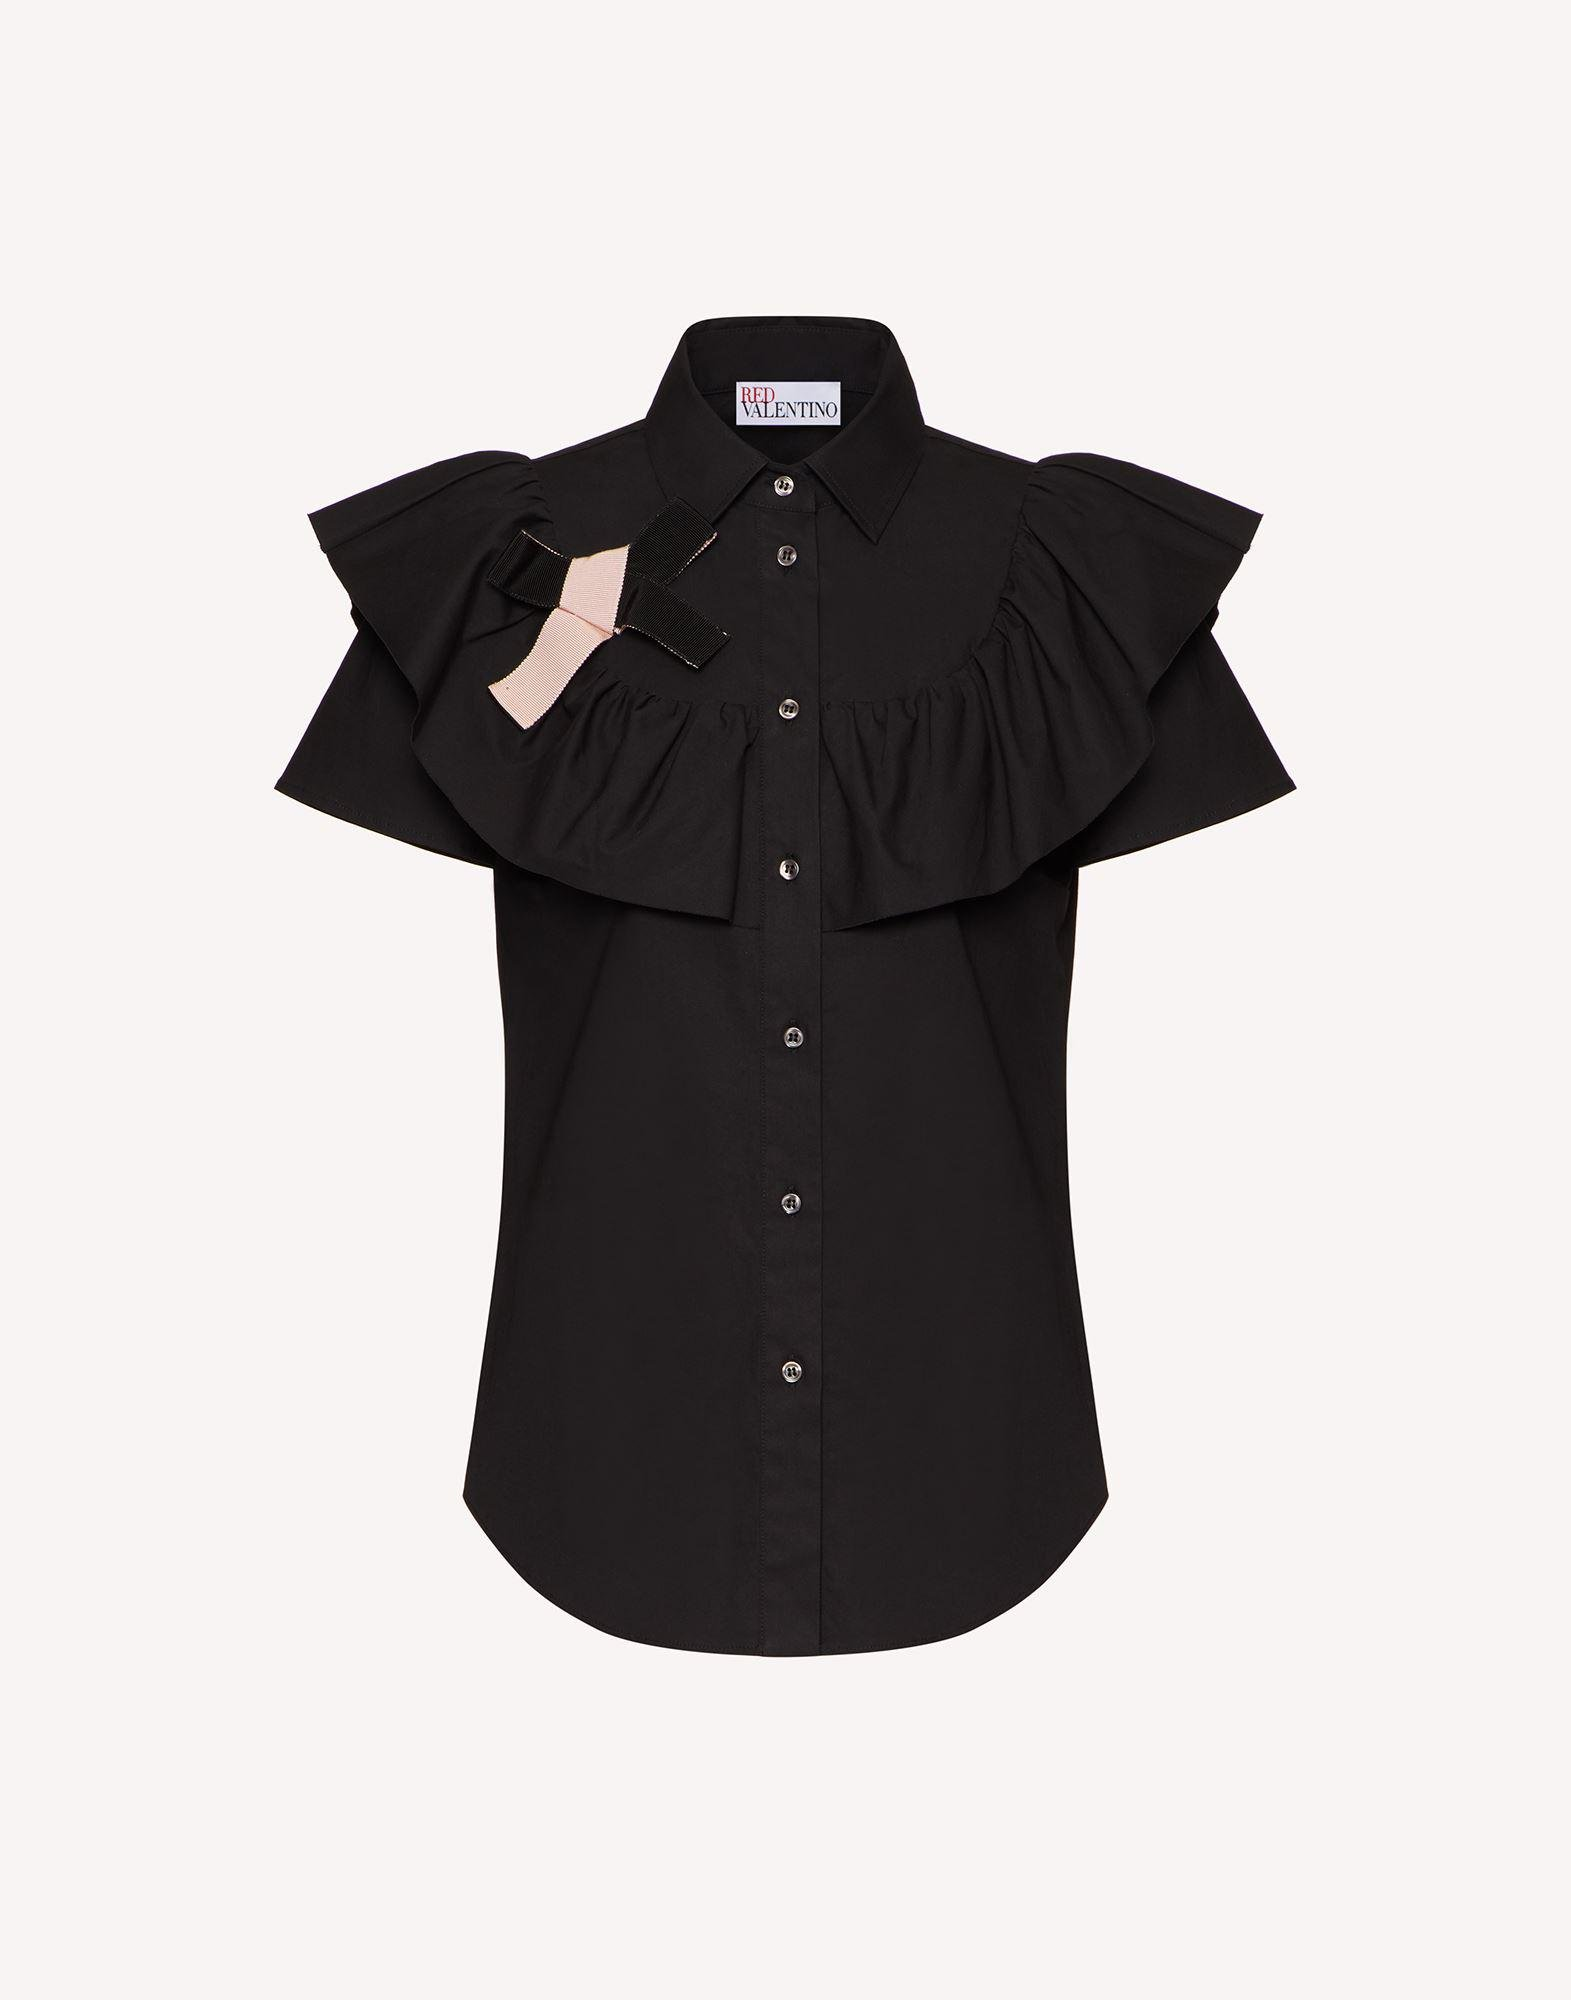 COTTON POPLIN SHIRT WITH RUFFLE AND BOW DETAIL 4